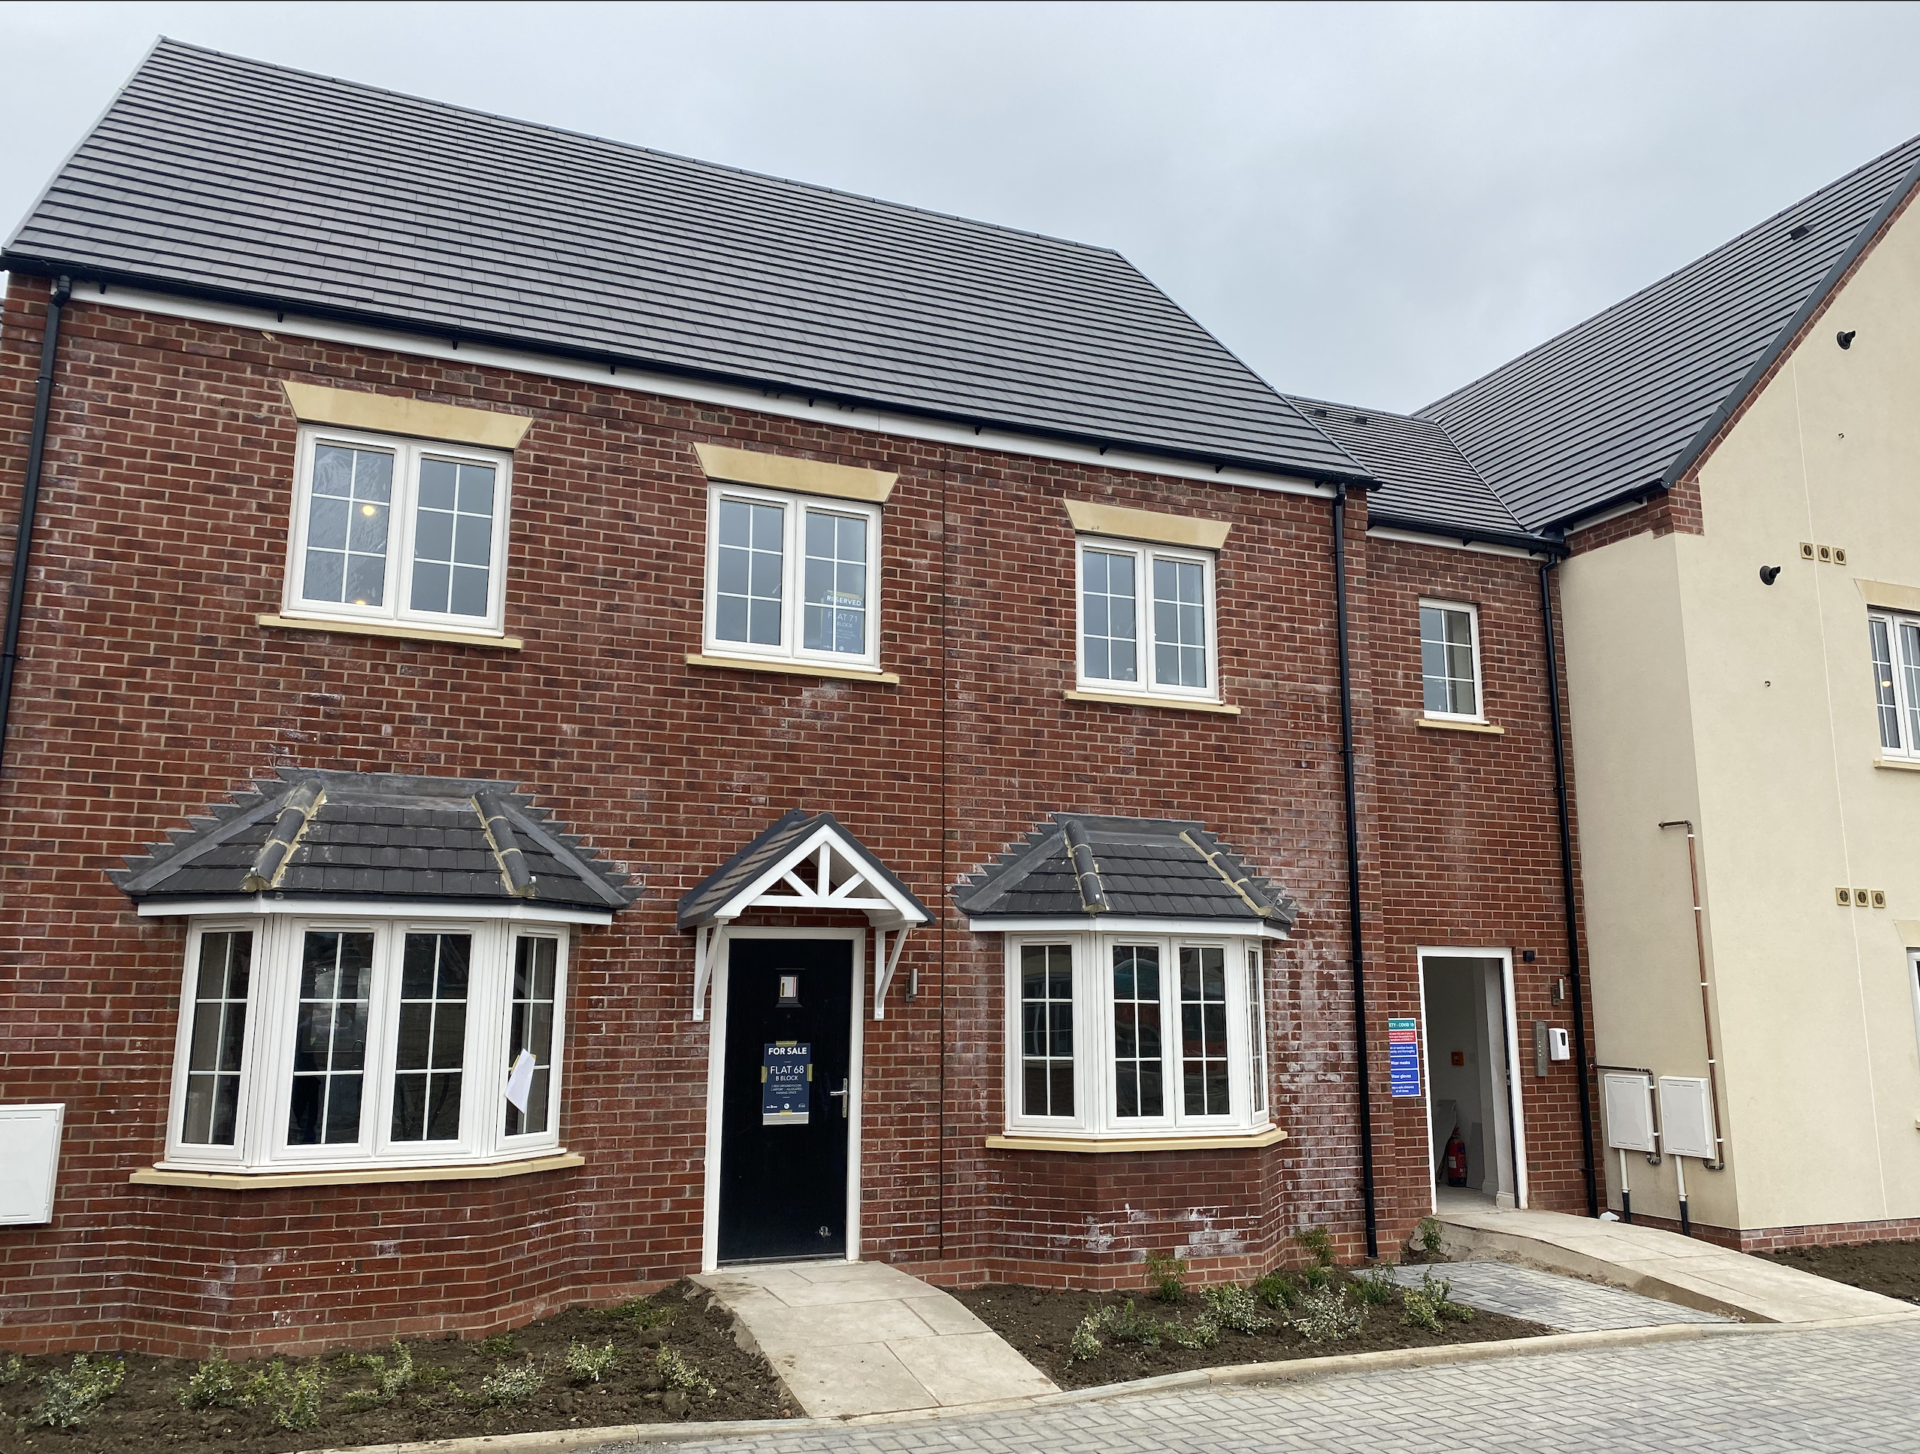 72 Nightingale Great Barford – First floor two bedroom apartment with allocated parking space